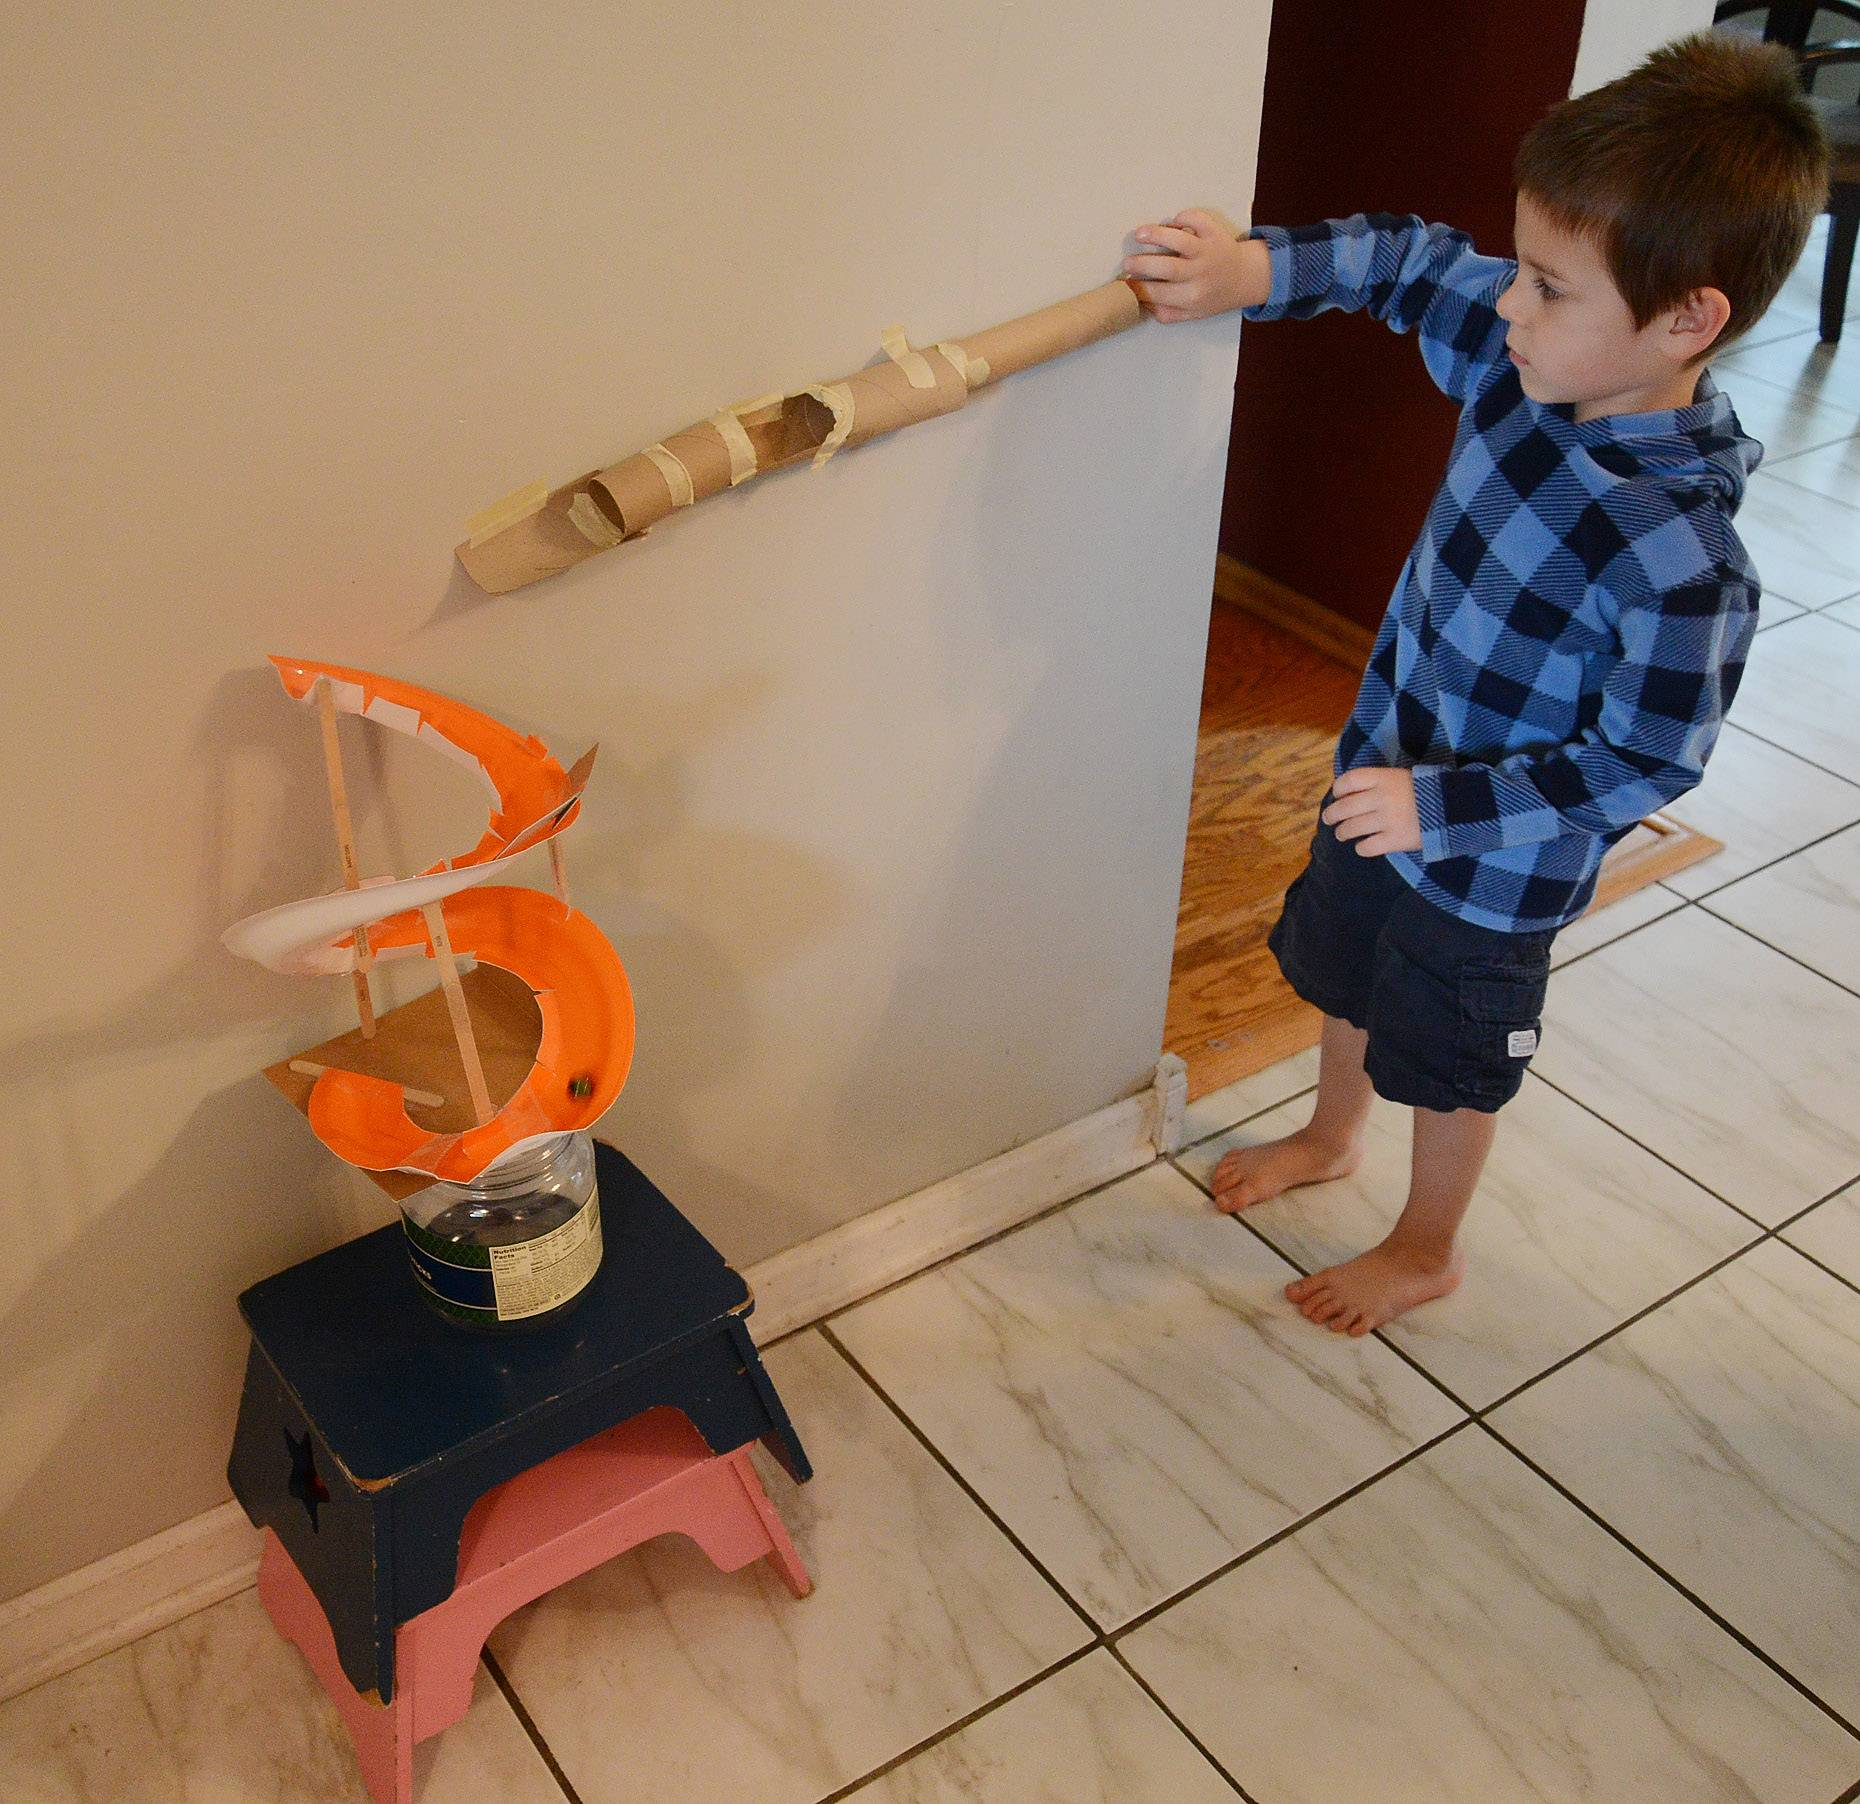 Justin Anderson demonstrates his marble run.